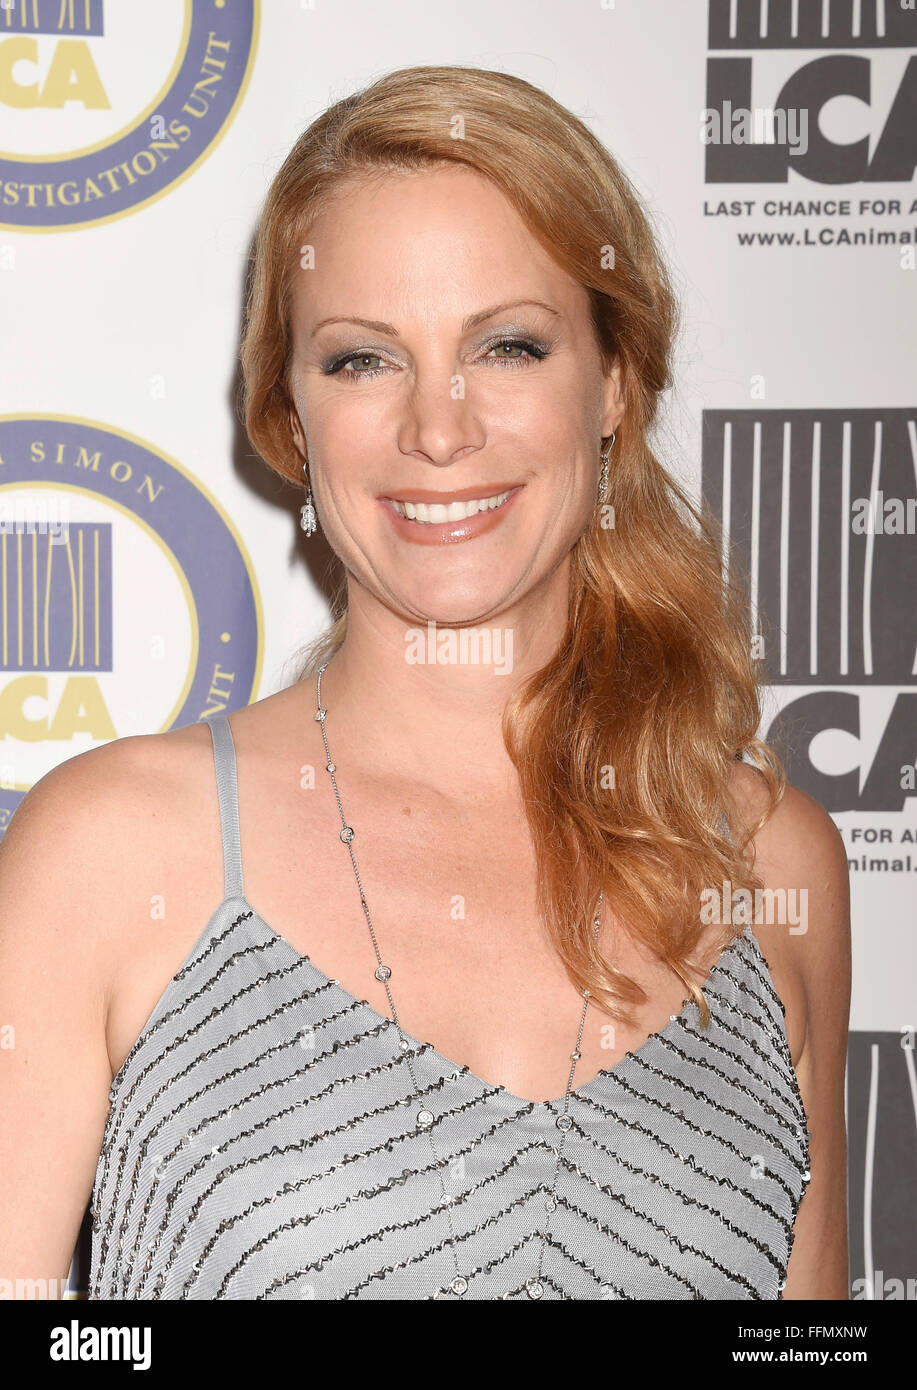 Actress Alison Eastwood attends the Last Chance for Animals Benefit Gala at The Beverly Hilton Hotel on October - Stock Image